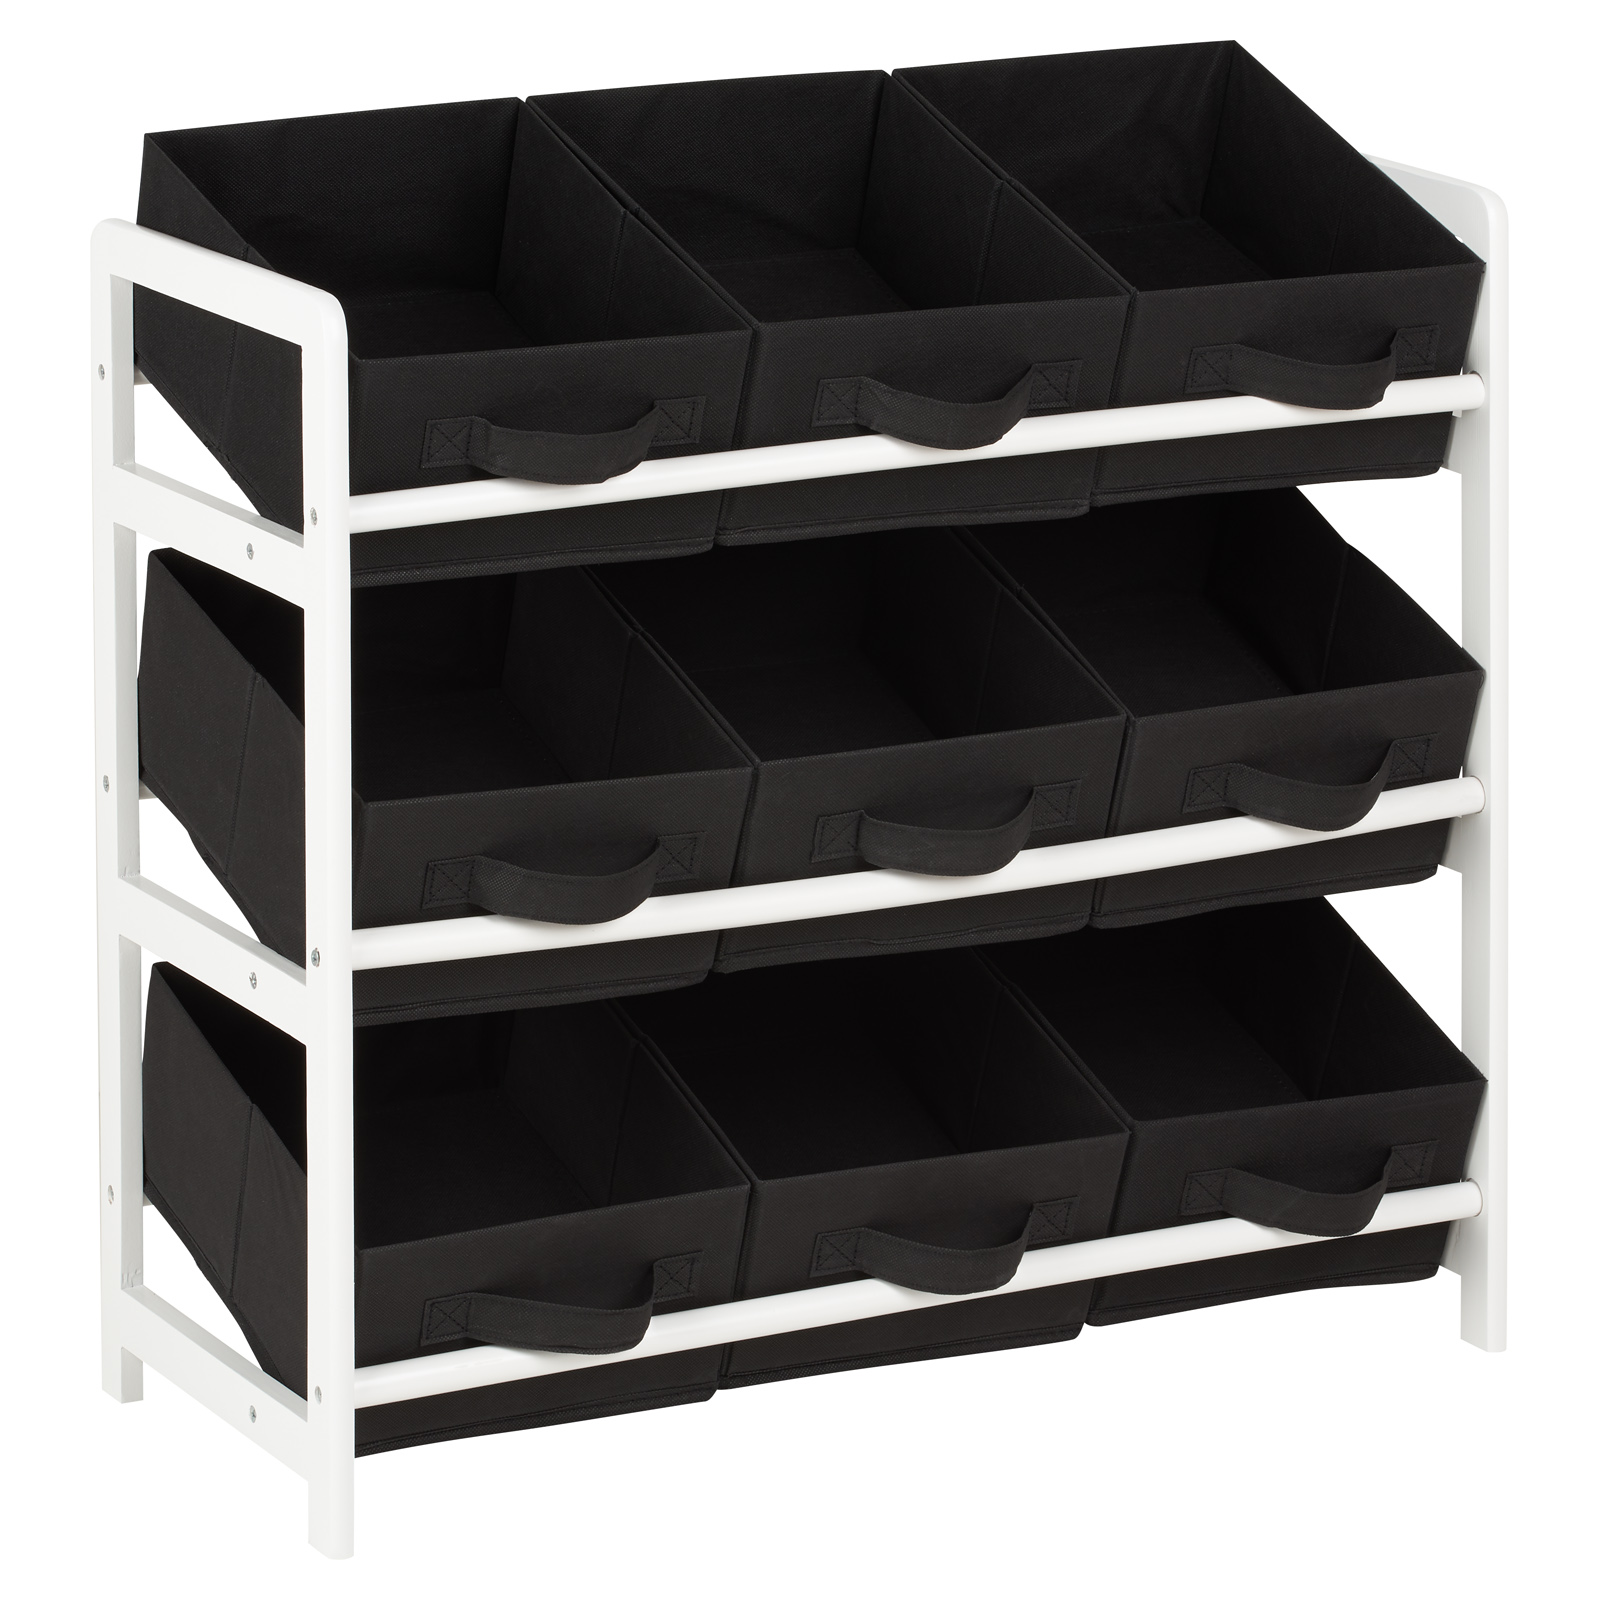 Details About Hartleys 3 Tier Storage Shelf Unit Kids Childrens Bedroom Bo Drawers Tox Box